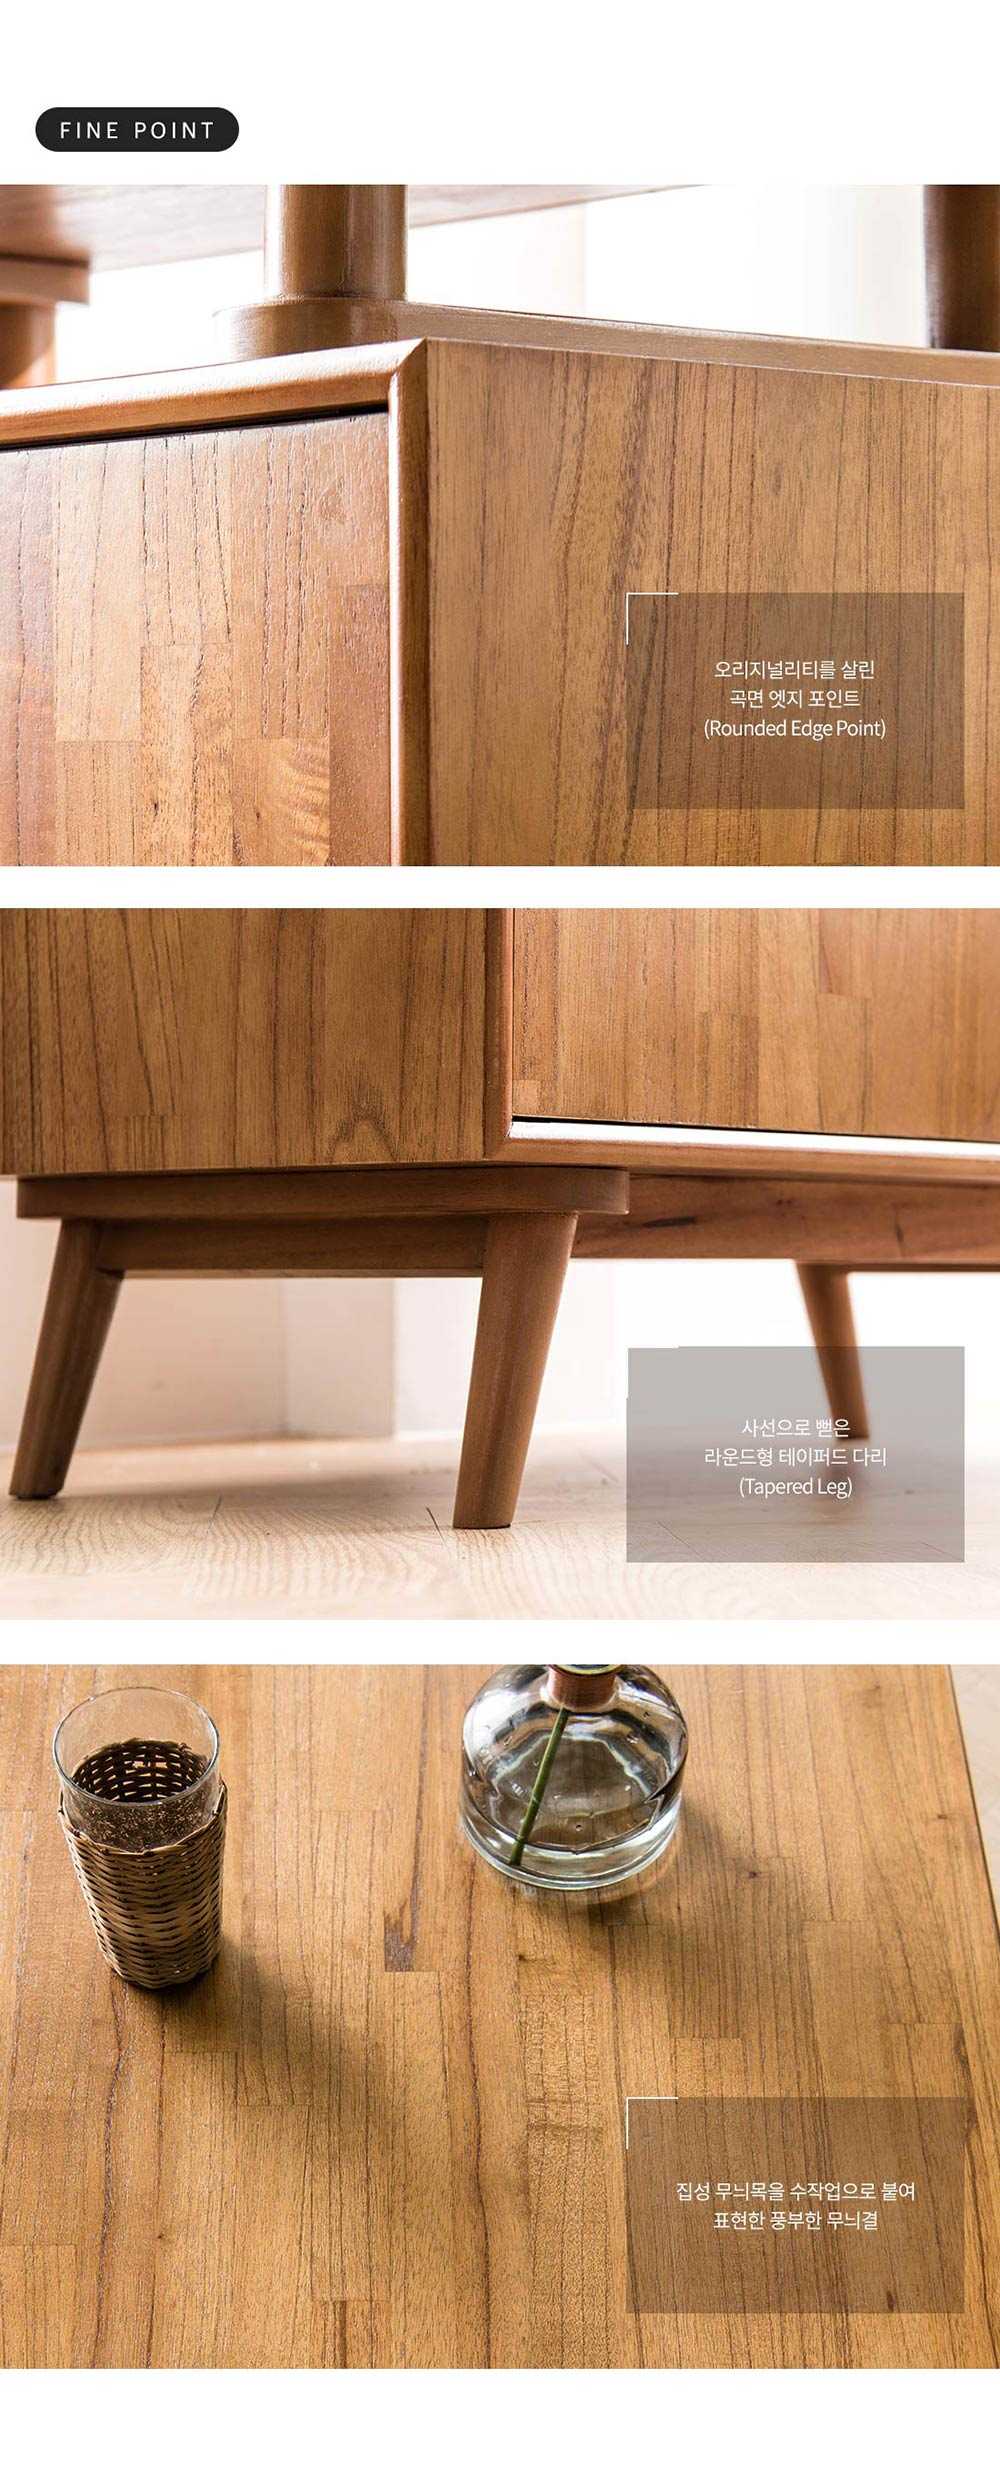 New_Retro_Desk_Console_Study_Table_Online_Furniture_Singapore_Details_1_by_born_in_colour